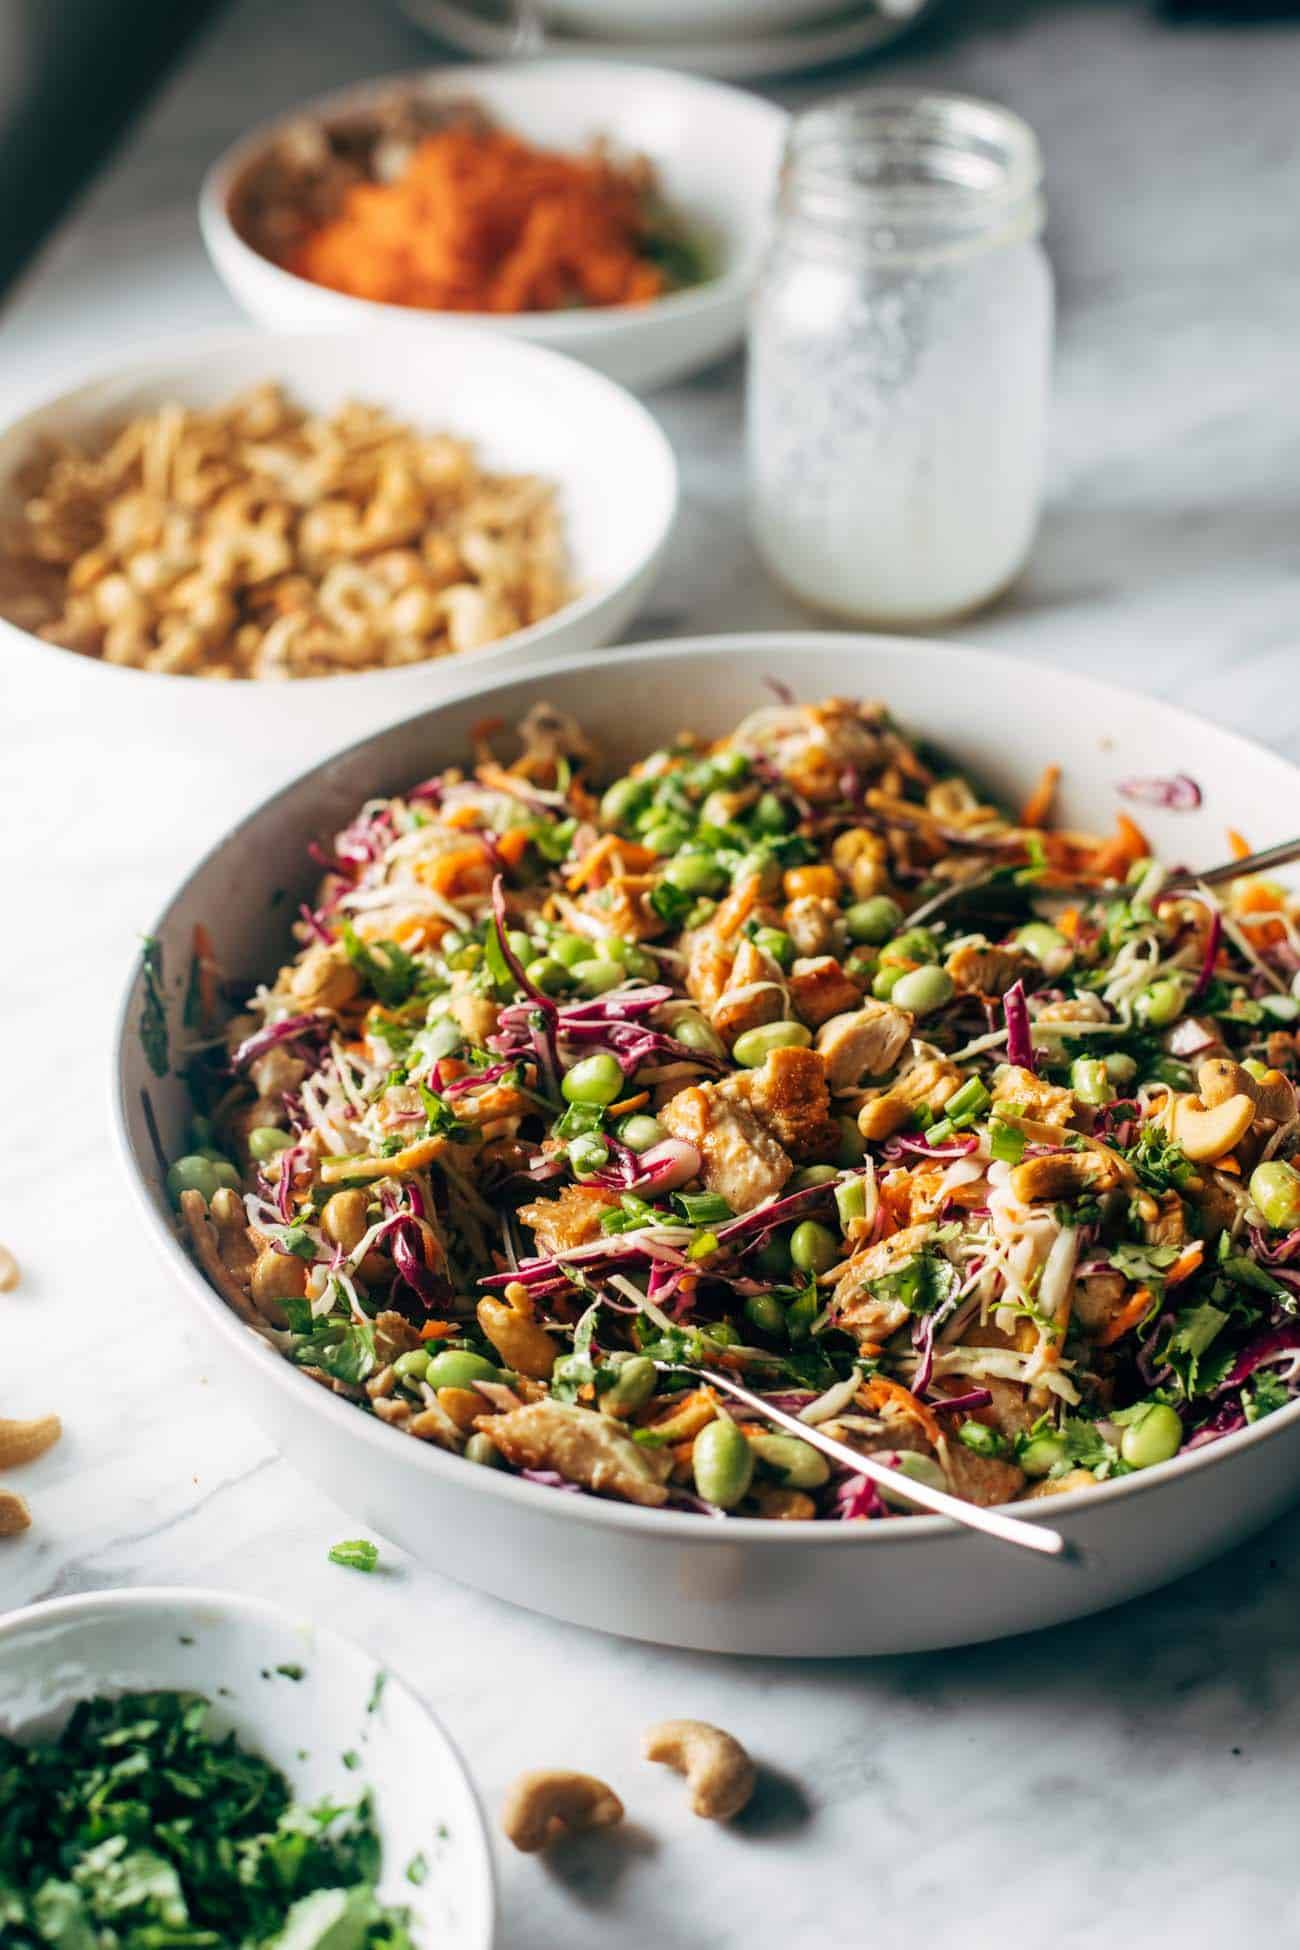 Cashew Crunch Salad in a bowl with a spoon.